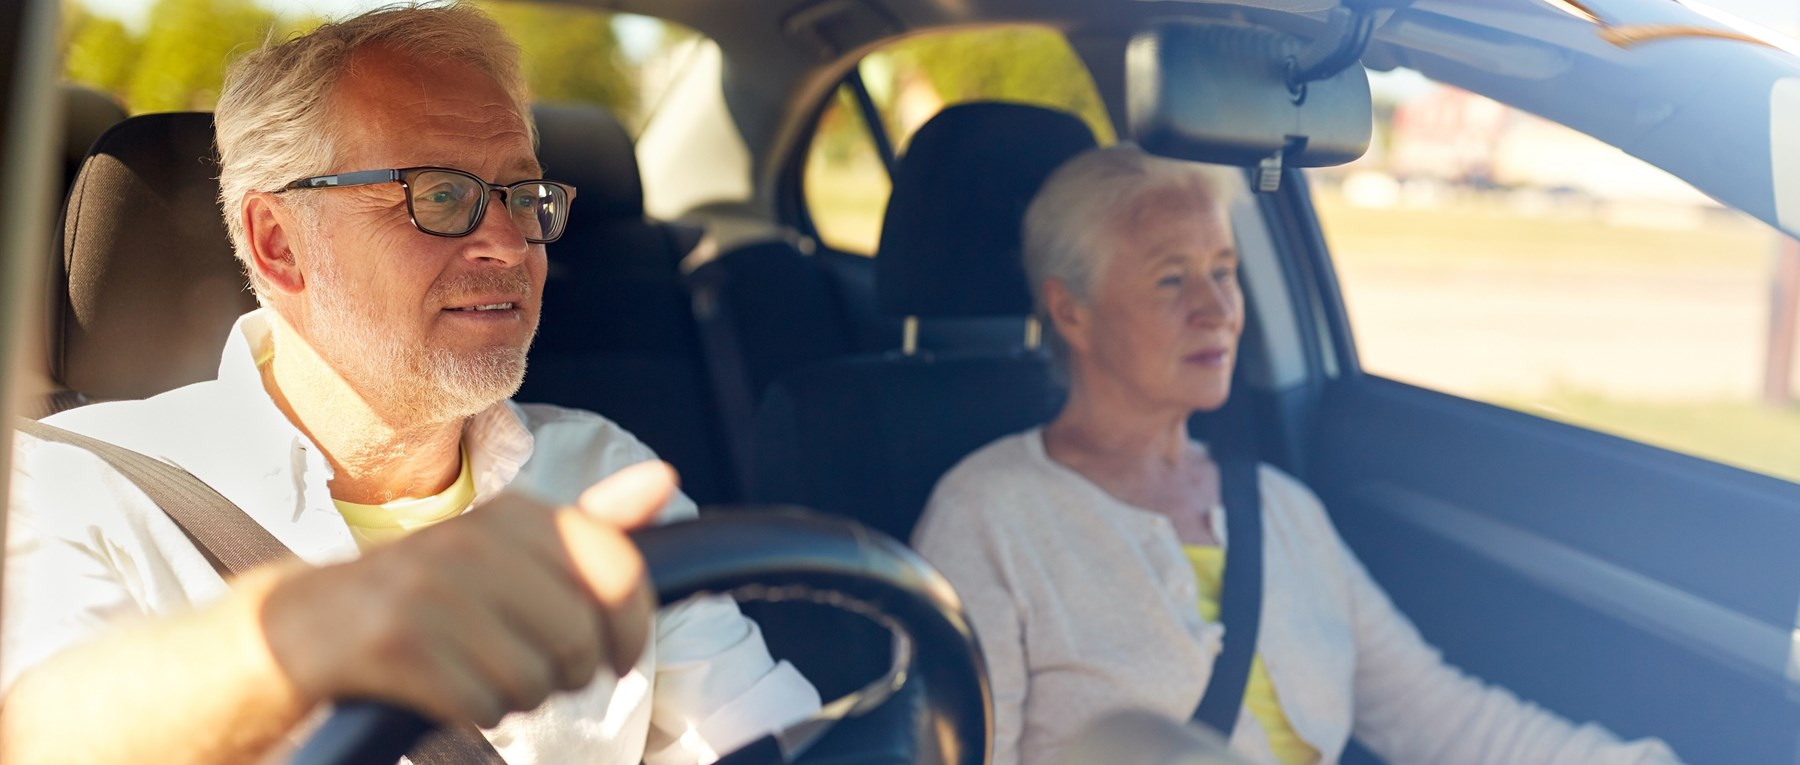 Older couple in car with male driver wearing glasses